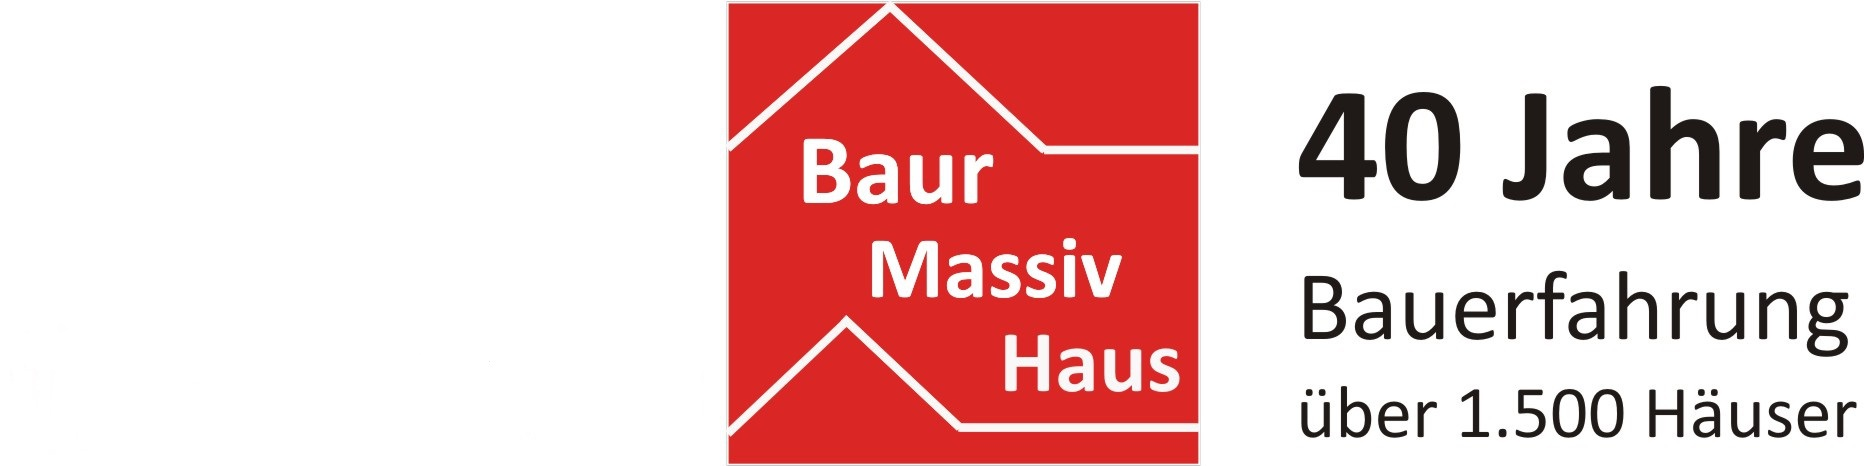 baur massiv haus gmbh leistungen. Black Bedroom Furniture Sets. Home Design Ideas